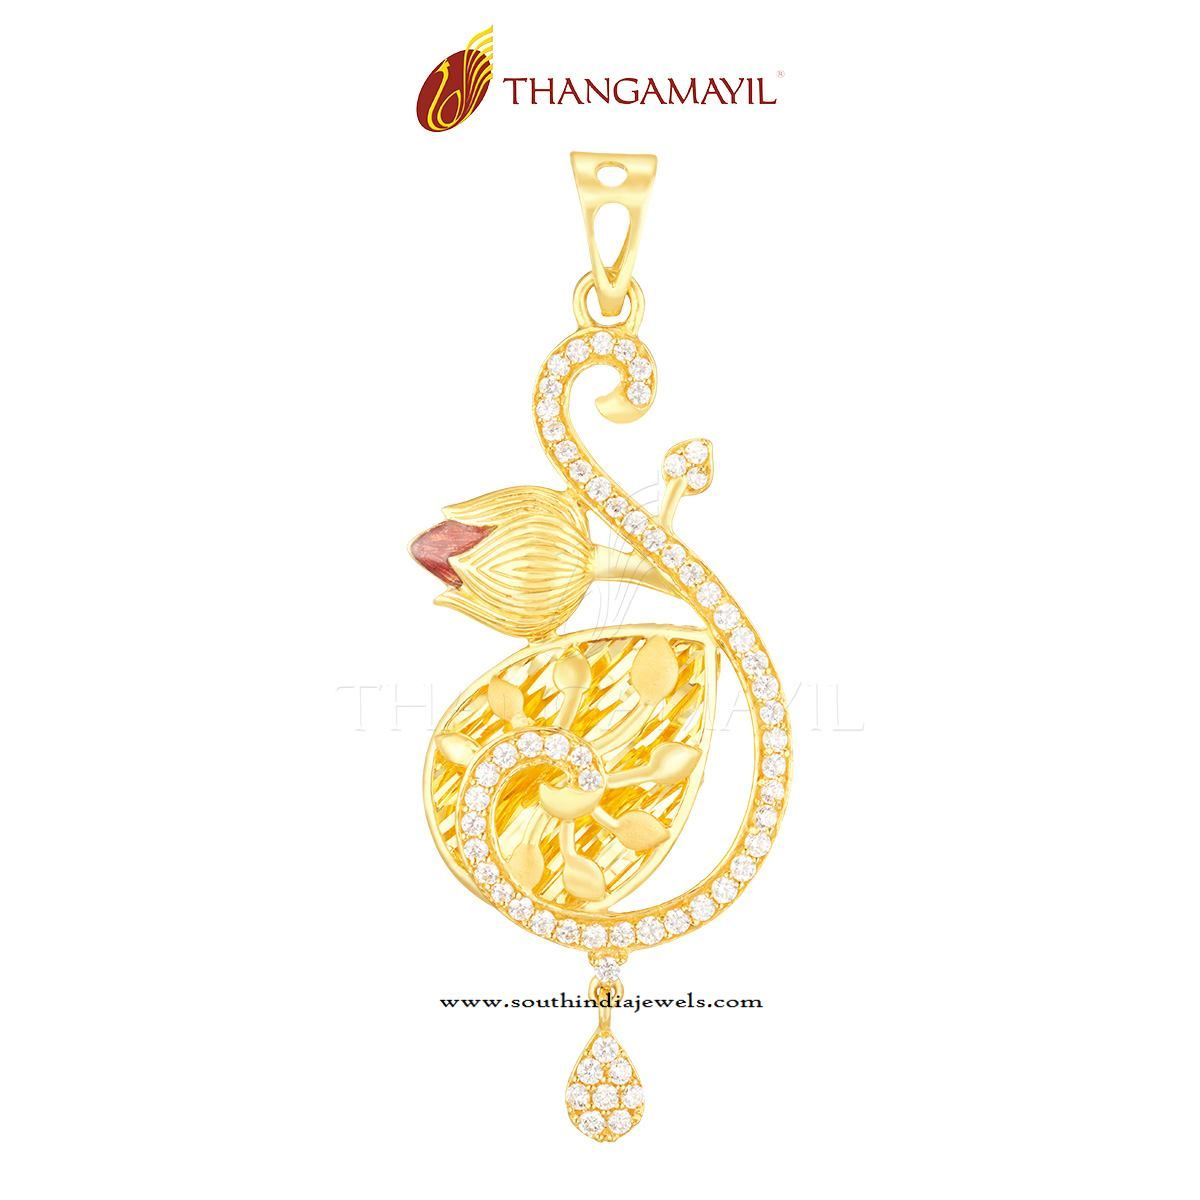 Gold Pendant from Thangamayil Jewellery | Gold pendant, Pendants ...